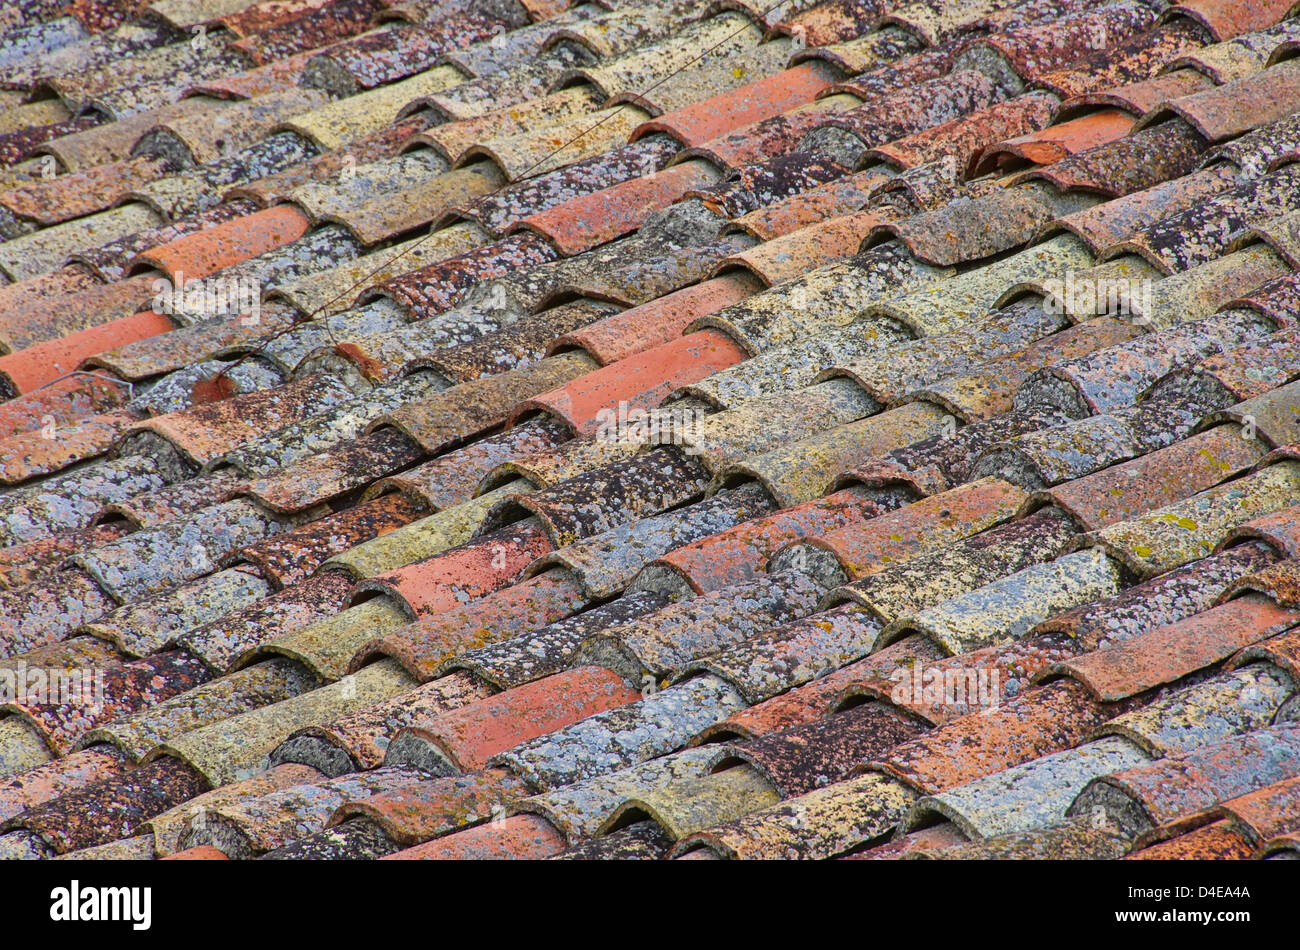 Clay Tile Roofing Stock Photos Amp Clay Tile Roofing Stock